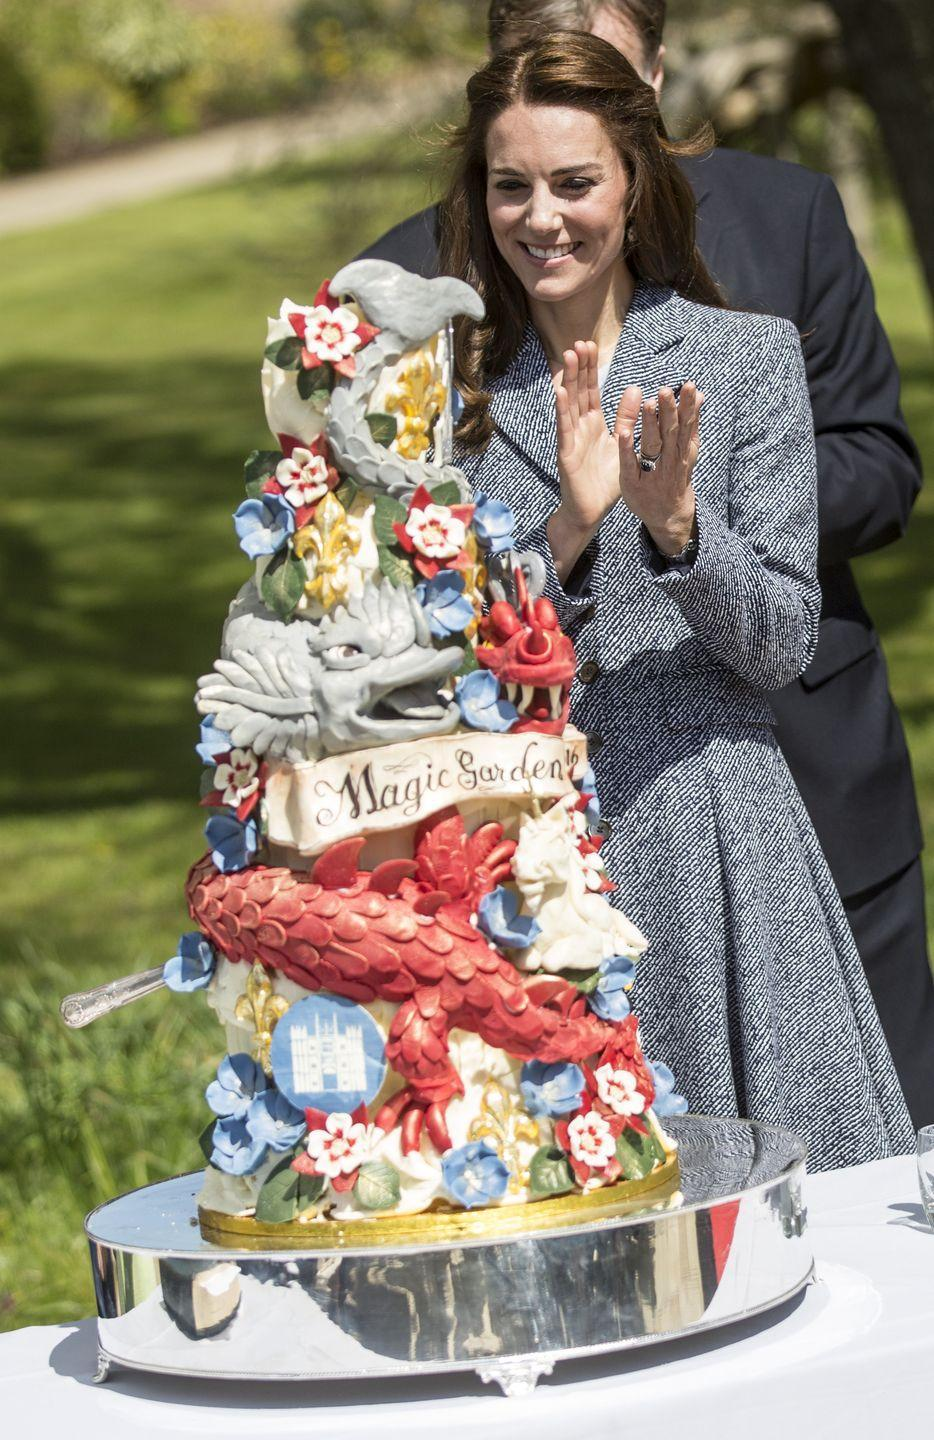 <p>The Duchess clapped for the bakers of this ornate cake, crafted for the opening of the Magic Garden at London's Hampton Court Palace.</p>